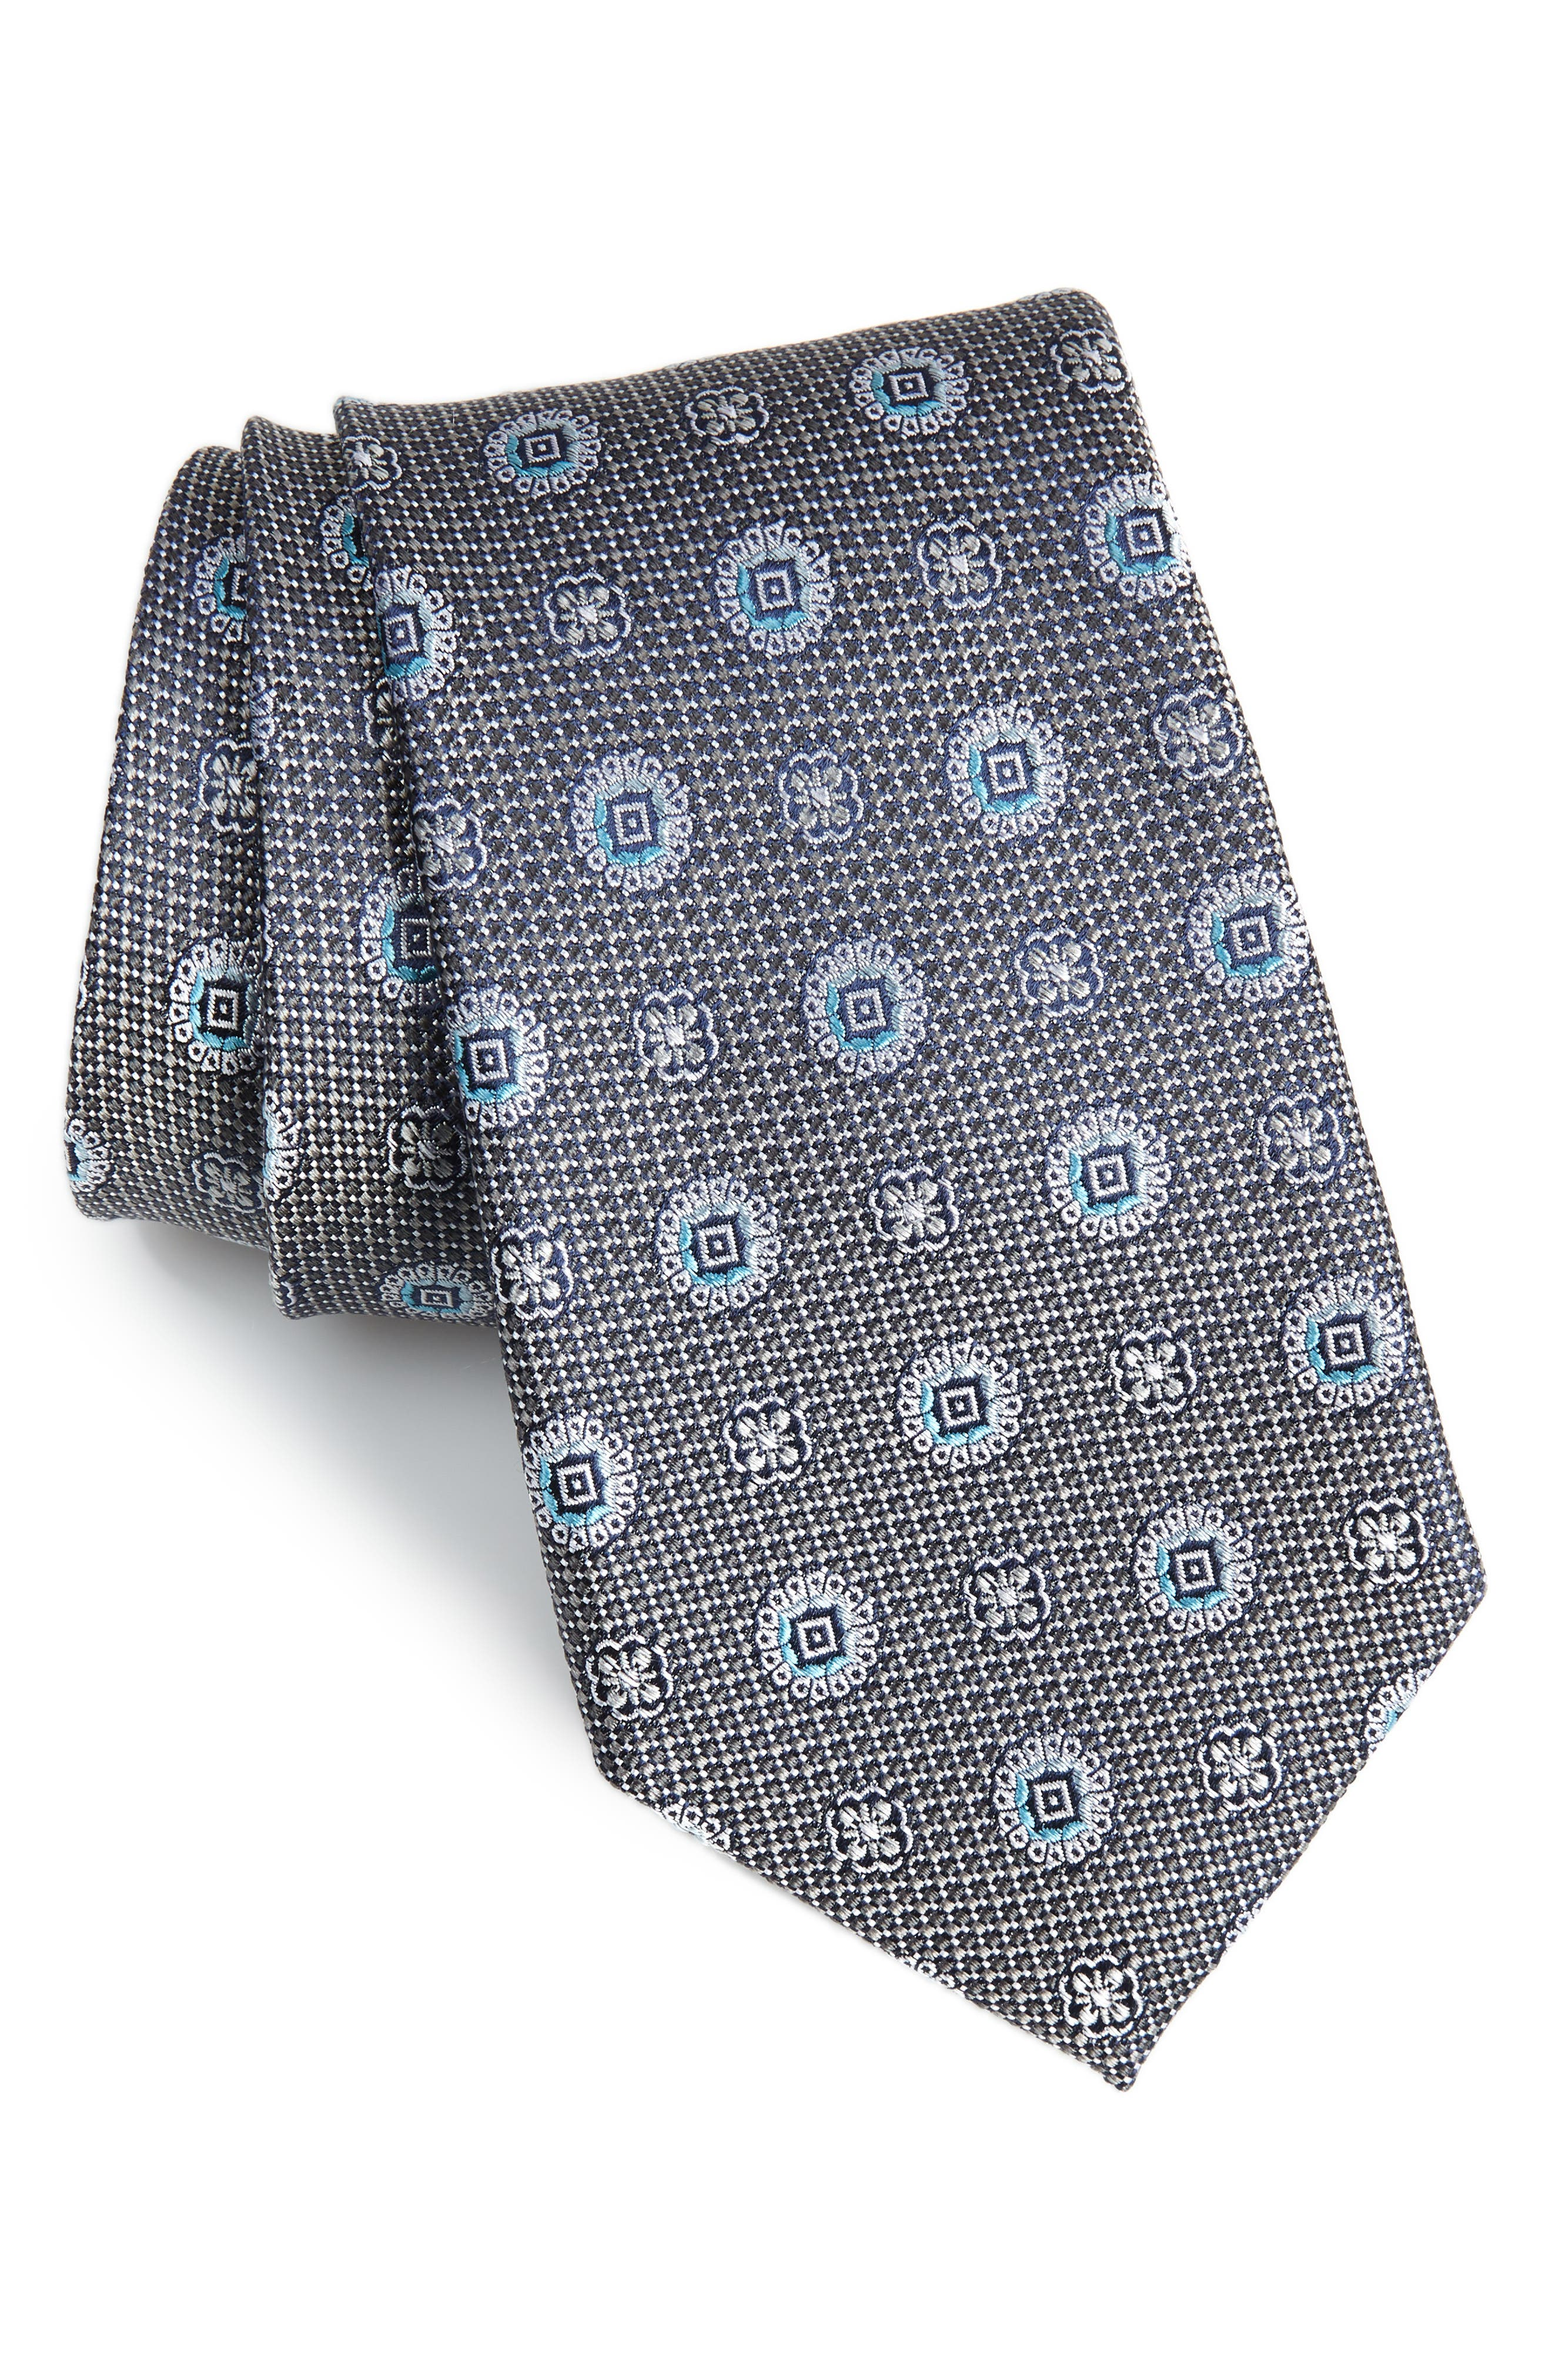 Rurwin Medallion Tie,                             Main thumbnail 1, color,                             020